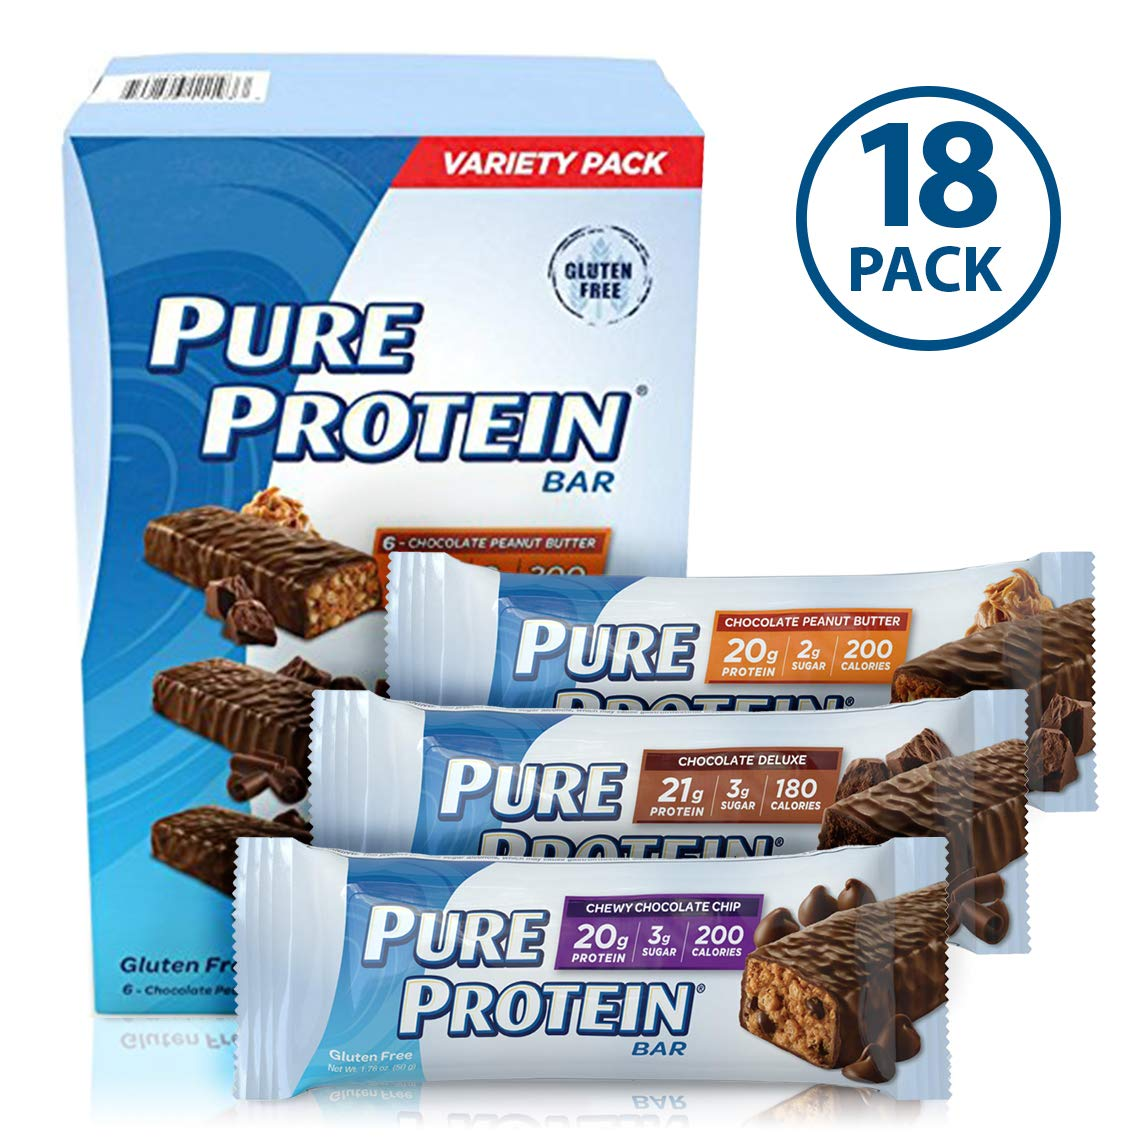 Pure Protein Bars, Healthy Snacks to Support Energy, Variety Pack, 1.76 oz, 18 Count by Pure Protein (Image #1)